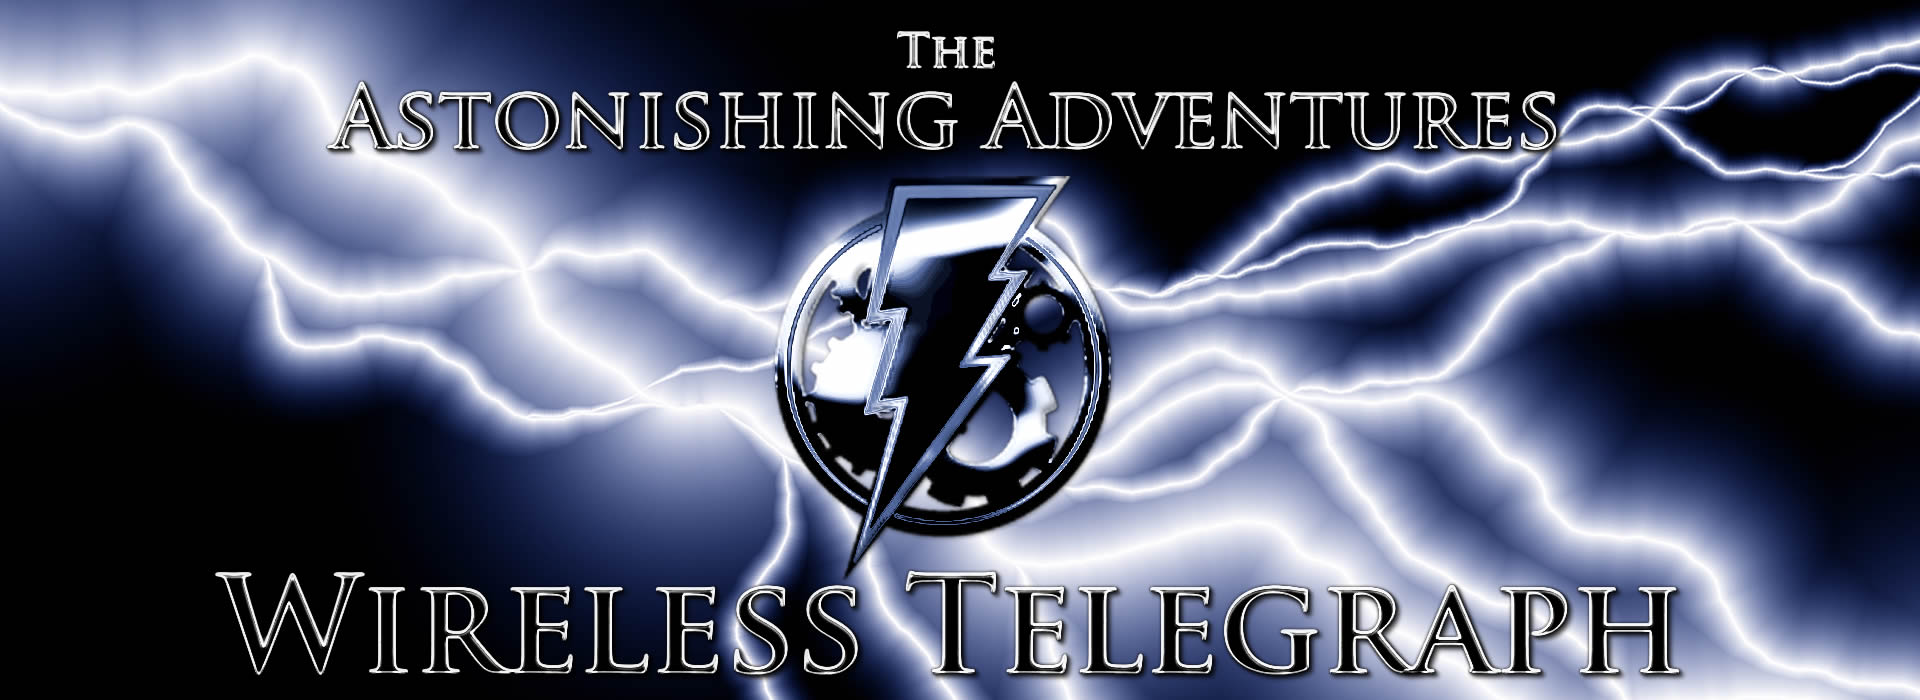 The Astonishing Adventures Wireless Telegraph